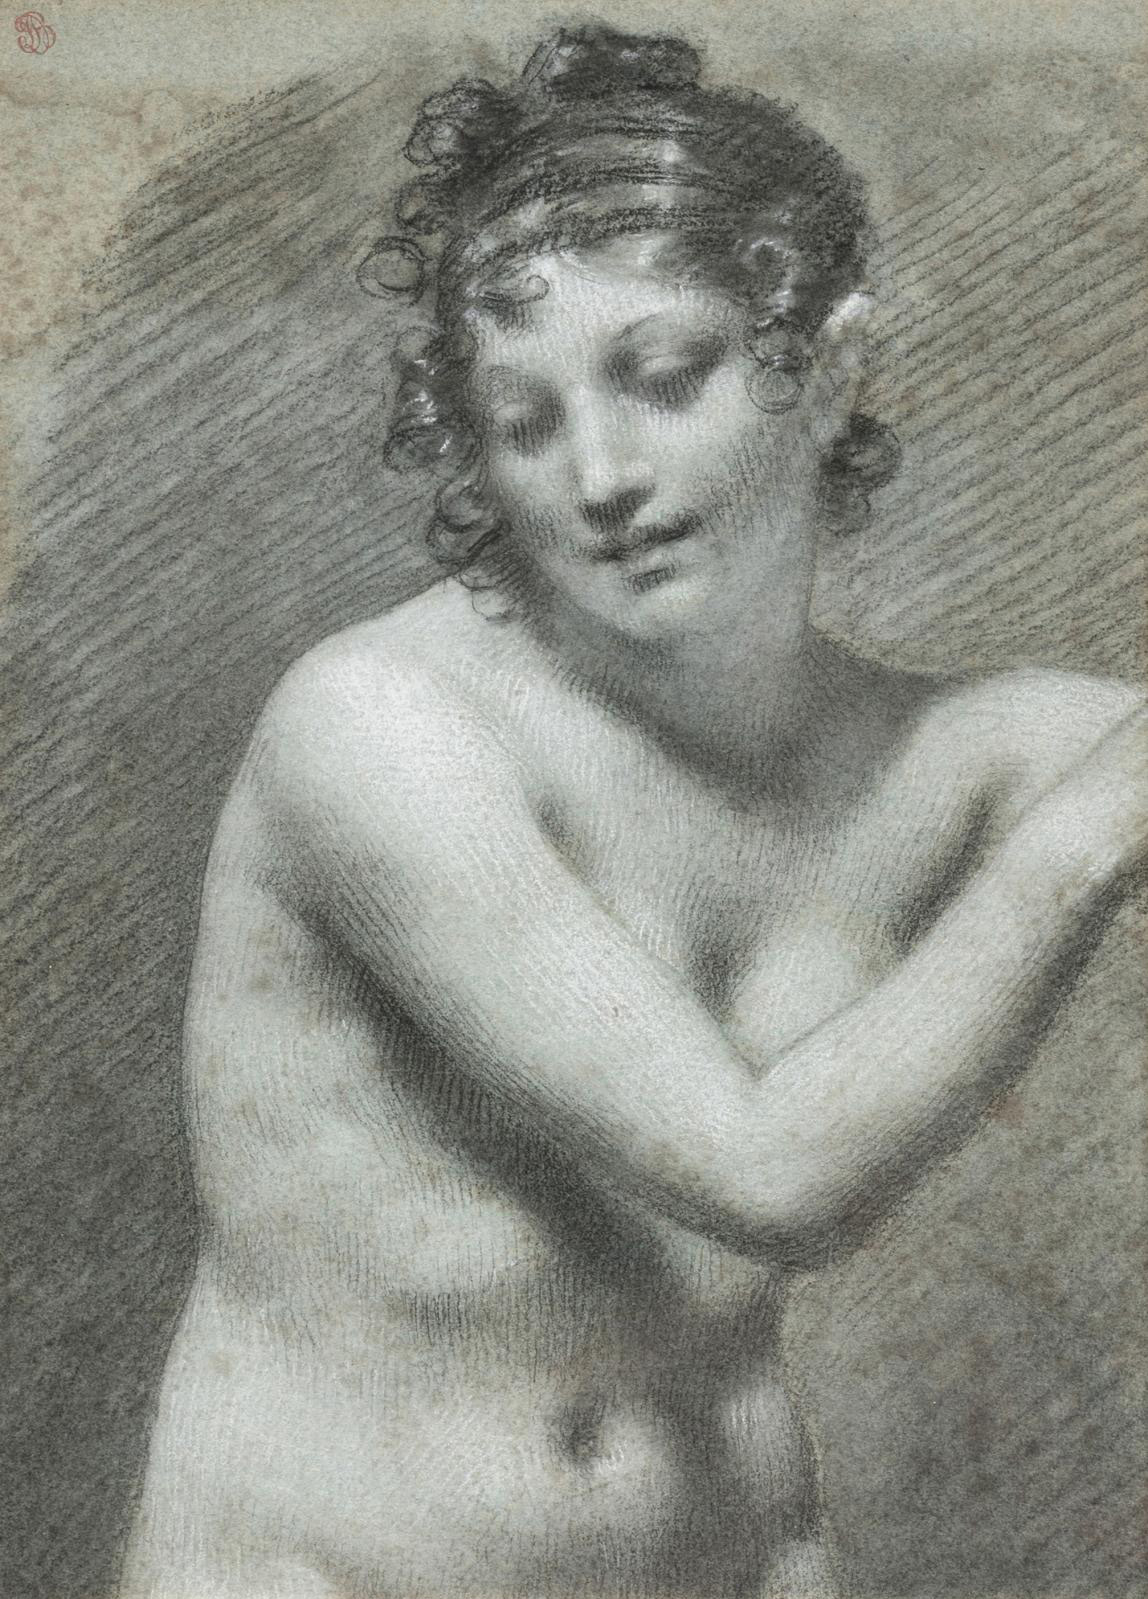 Pierre-Paul Prud'hon (1758-1823),Study after Marguerite, black chalk and white highlights on blue paper (24.5 x 17.5 cm/9.7 x 6.9 in). R